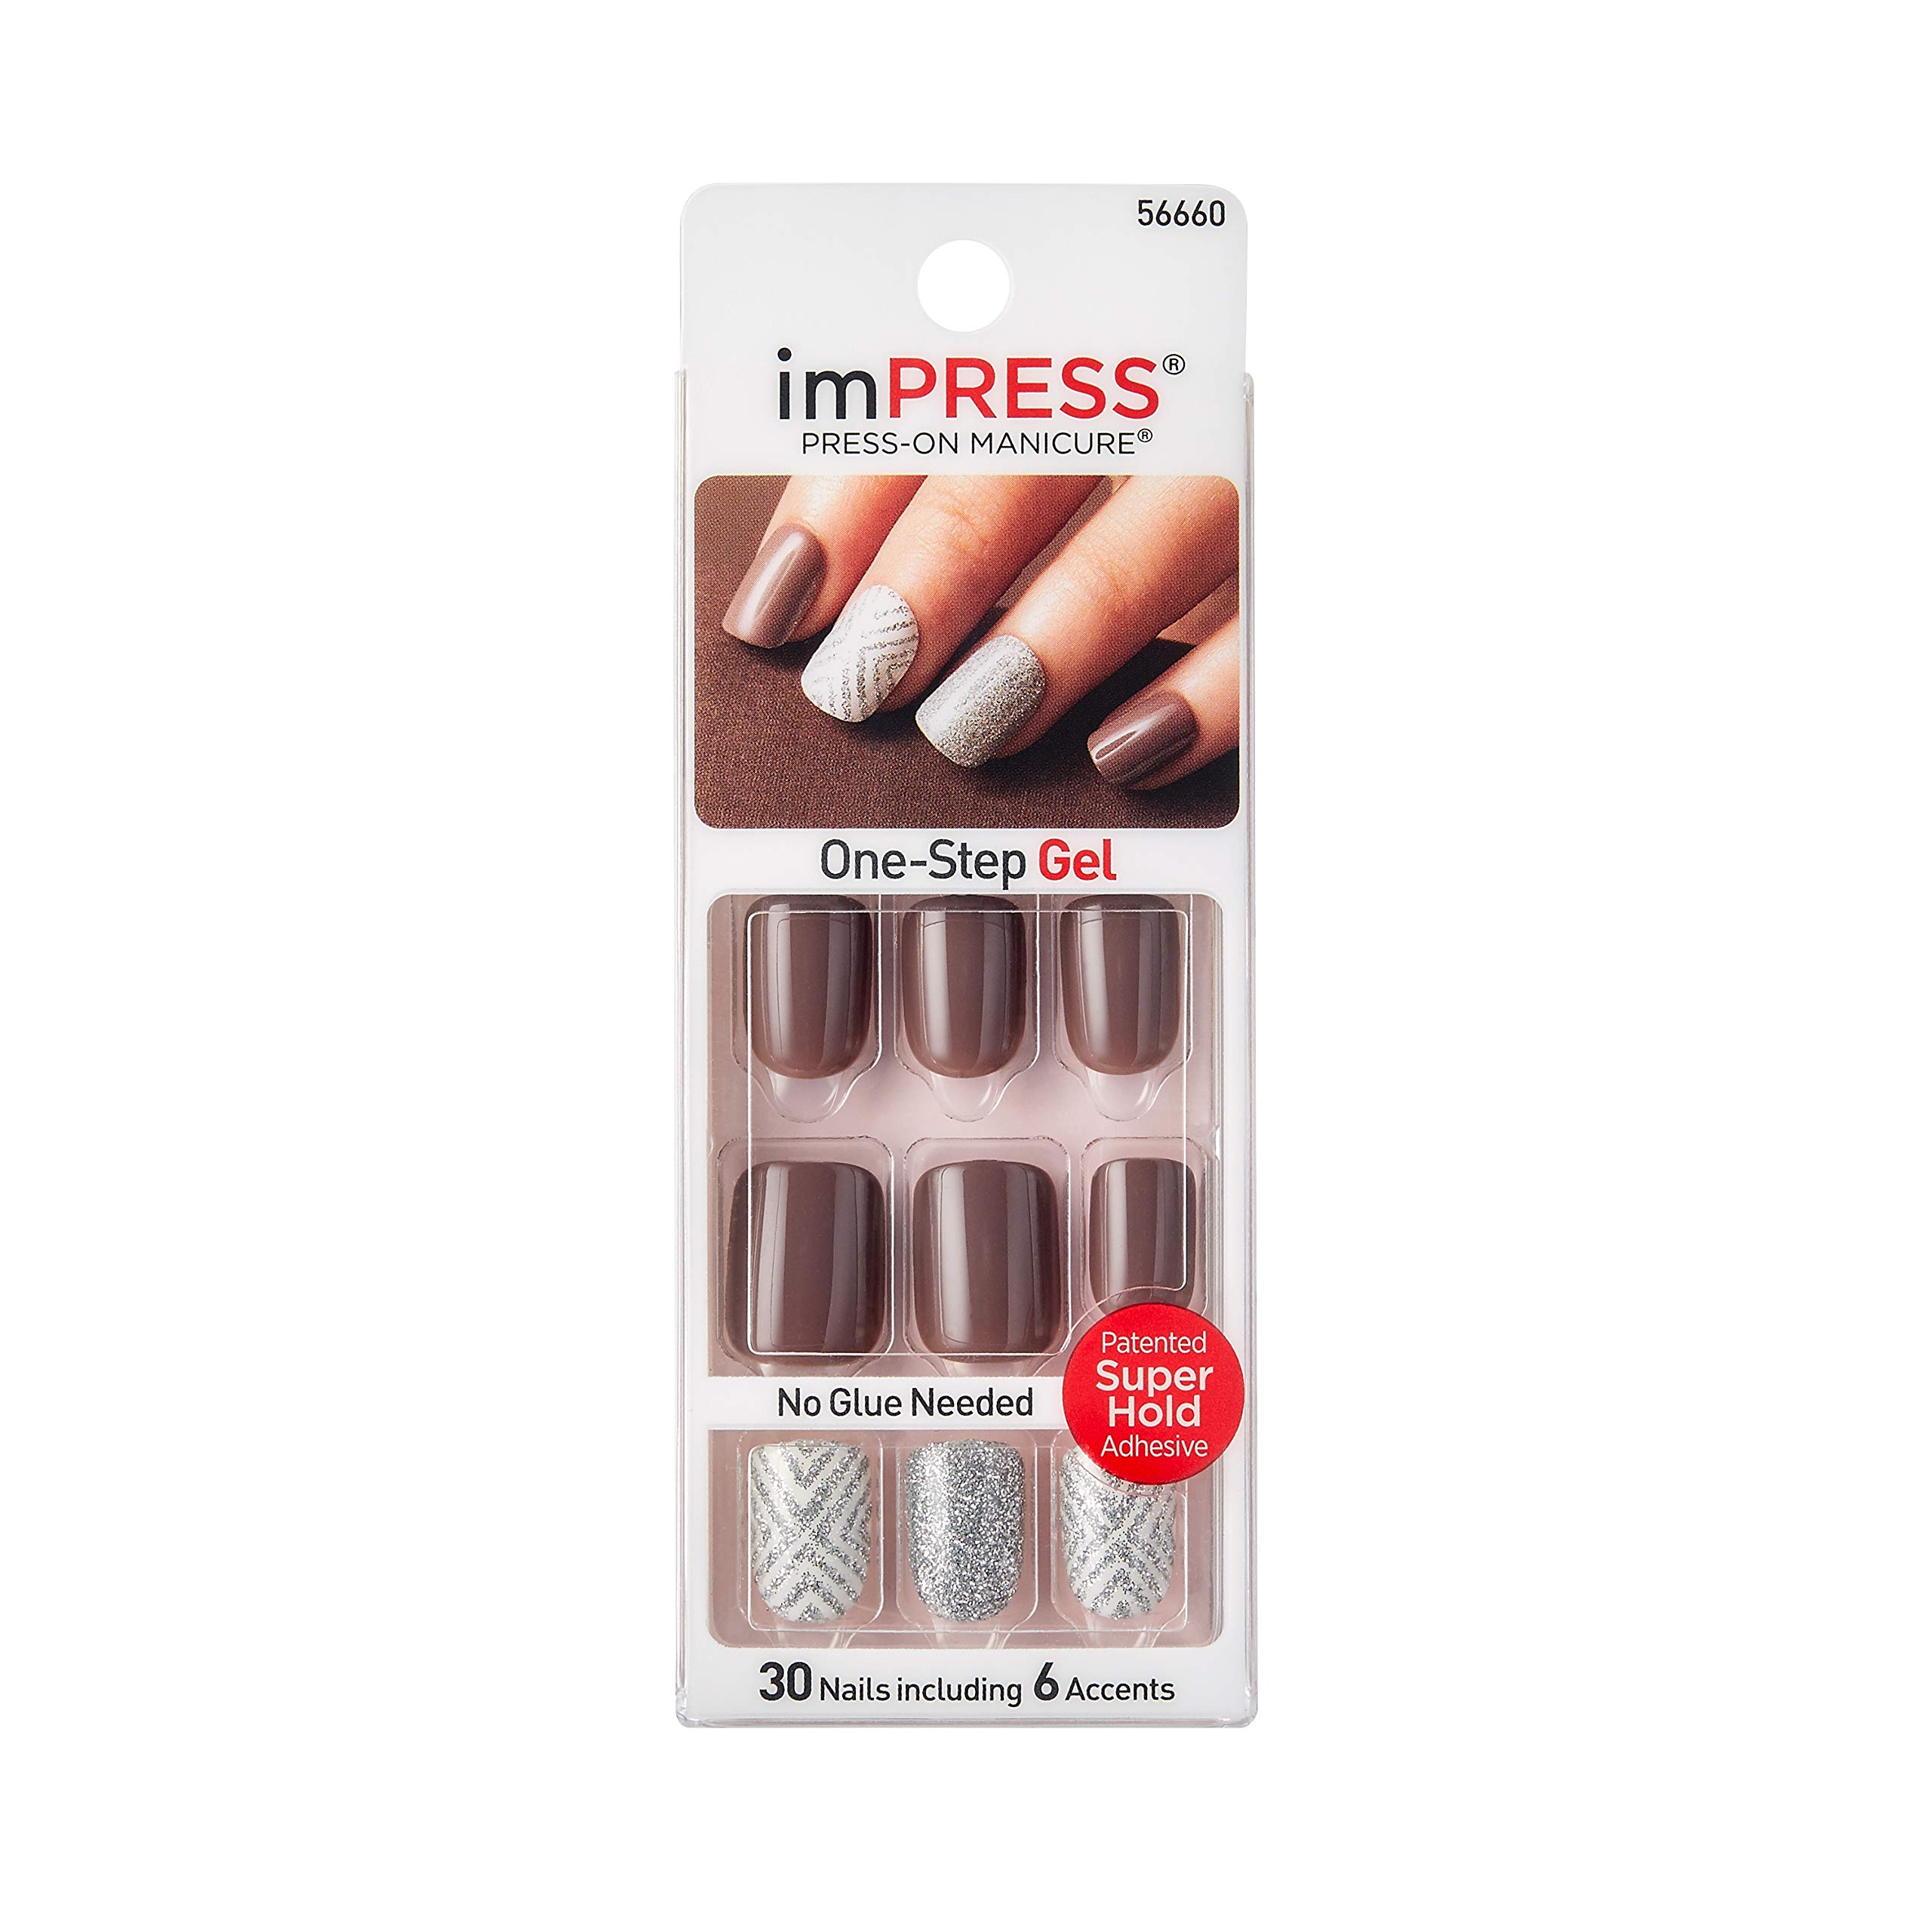 Impress Press-On Manicure Ultra Gel Shine - Ecstatic Cling (BIP100) by Impress